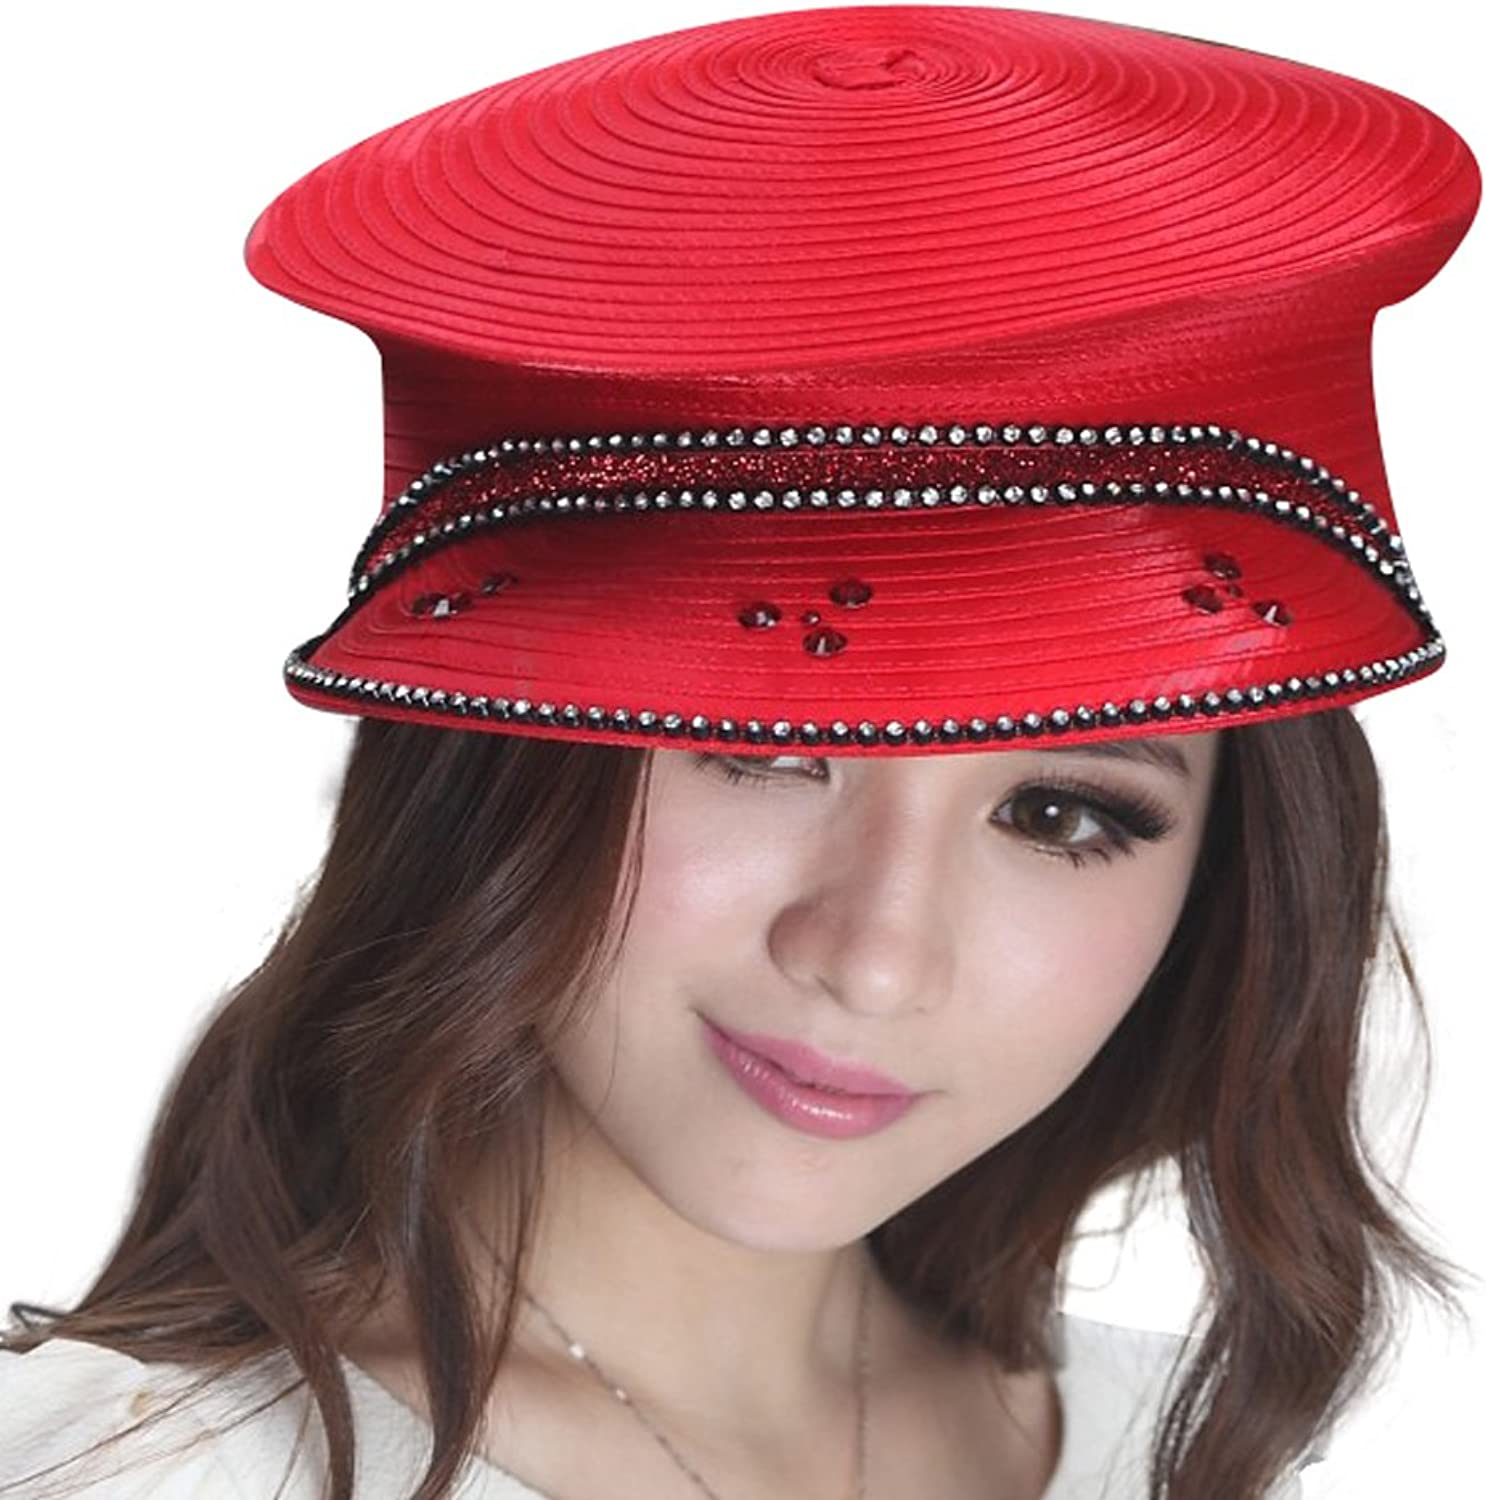 June's Young Ladies Church Hats Party Hats 100% Polyester Royal bluee Red 2 colors